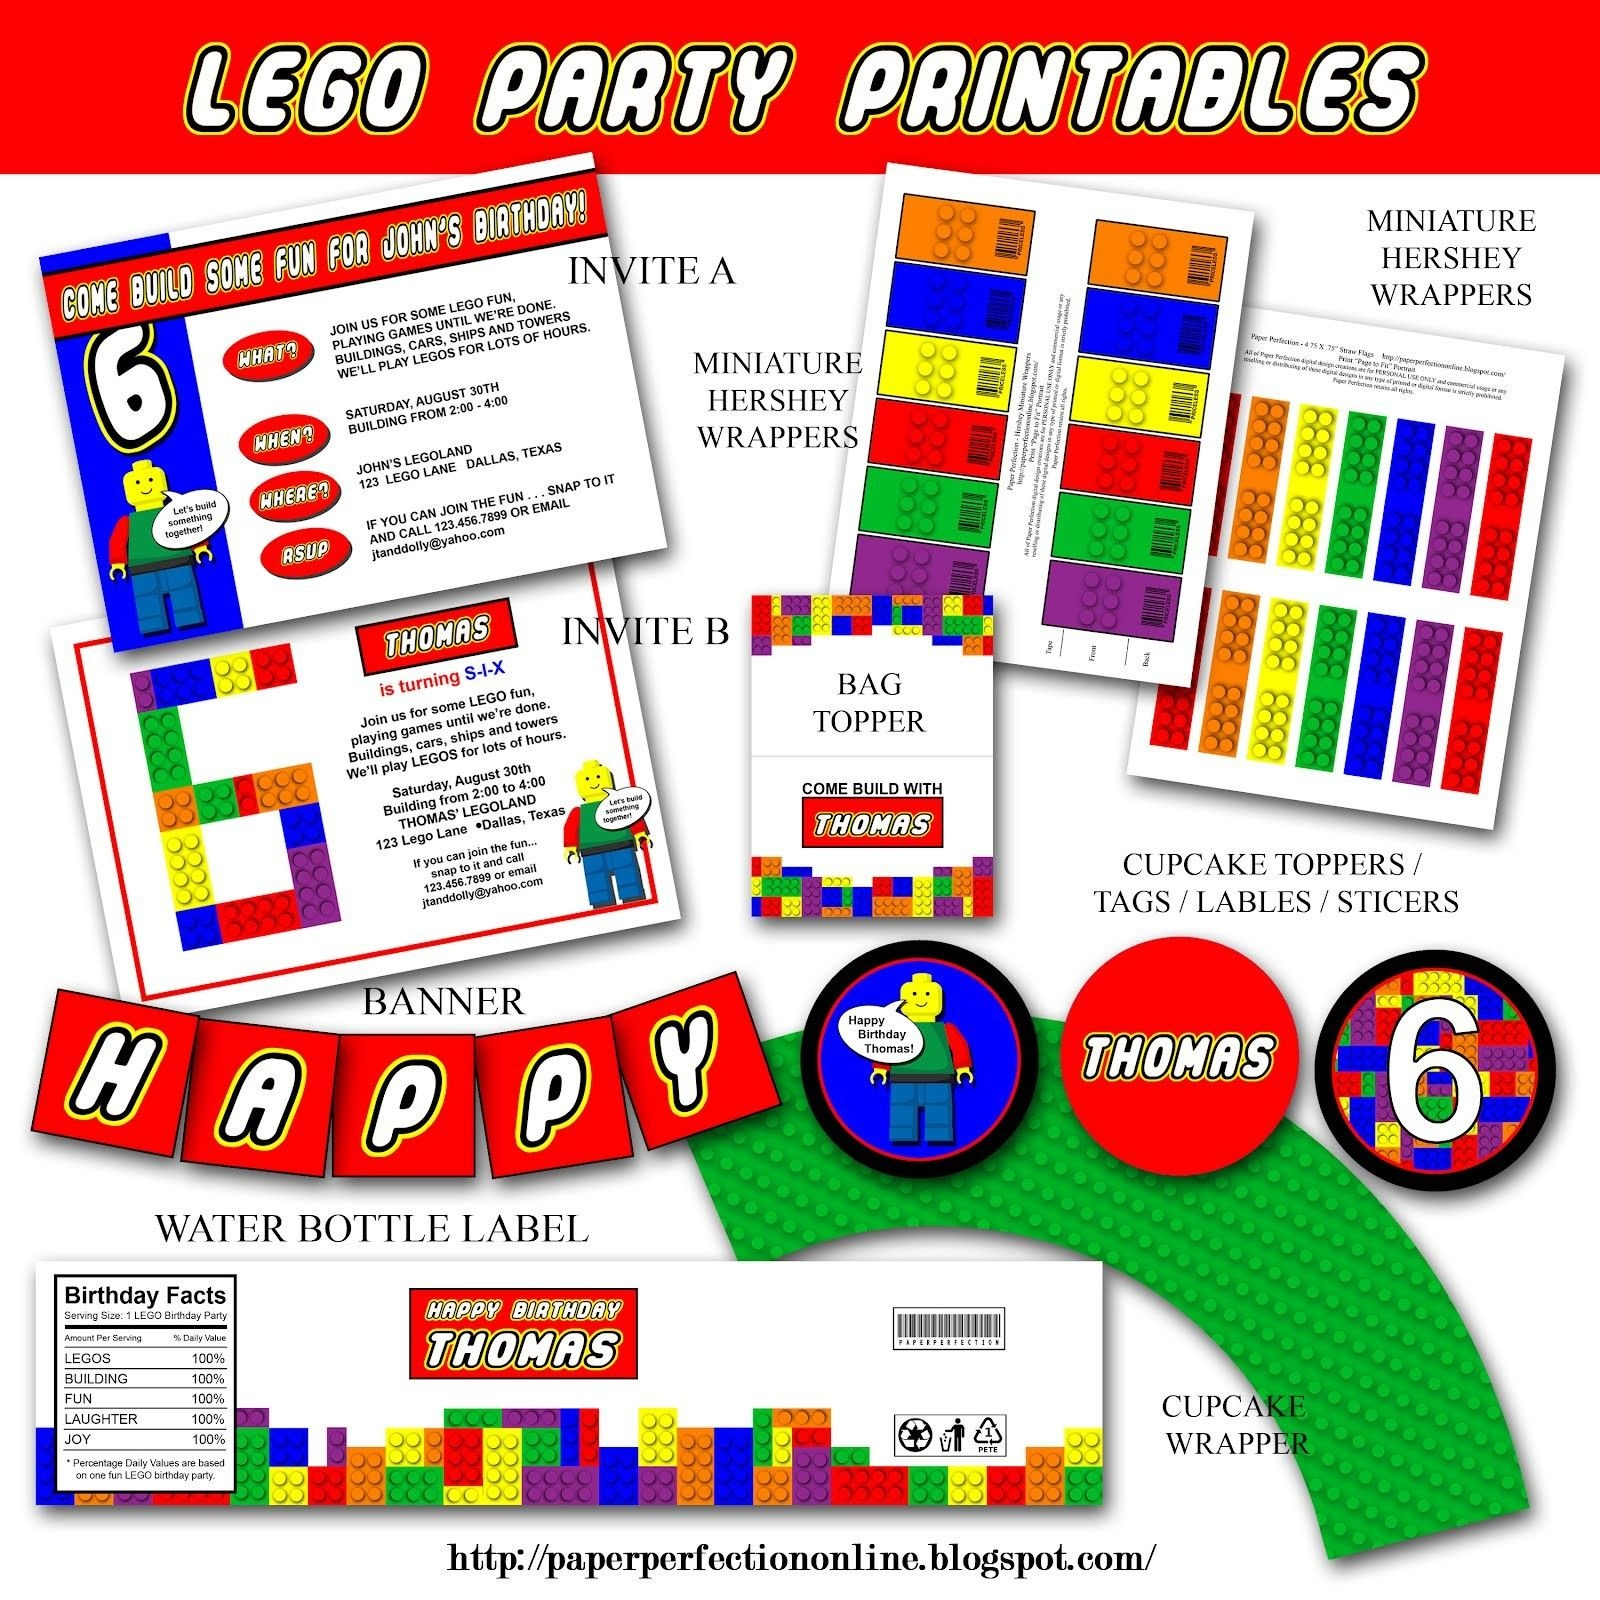 Pinmaria Alvarez On Legos | Lego Party Invitations, Lego - Lego Party Invitations Printable Free